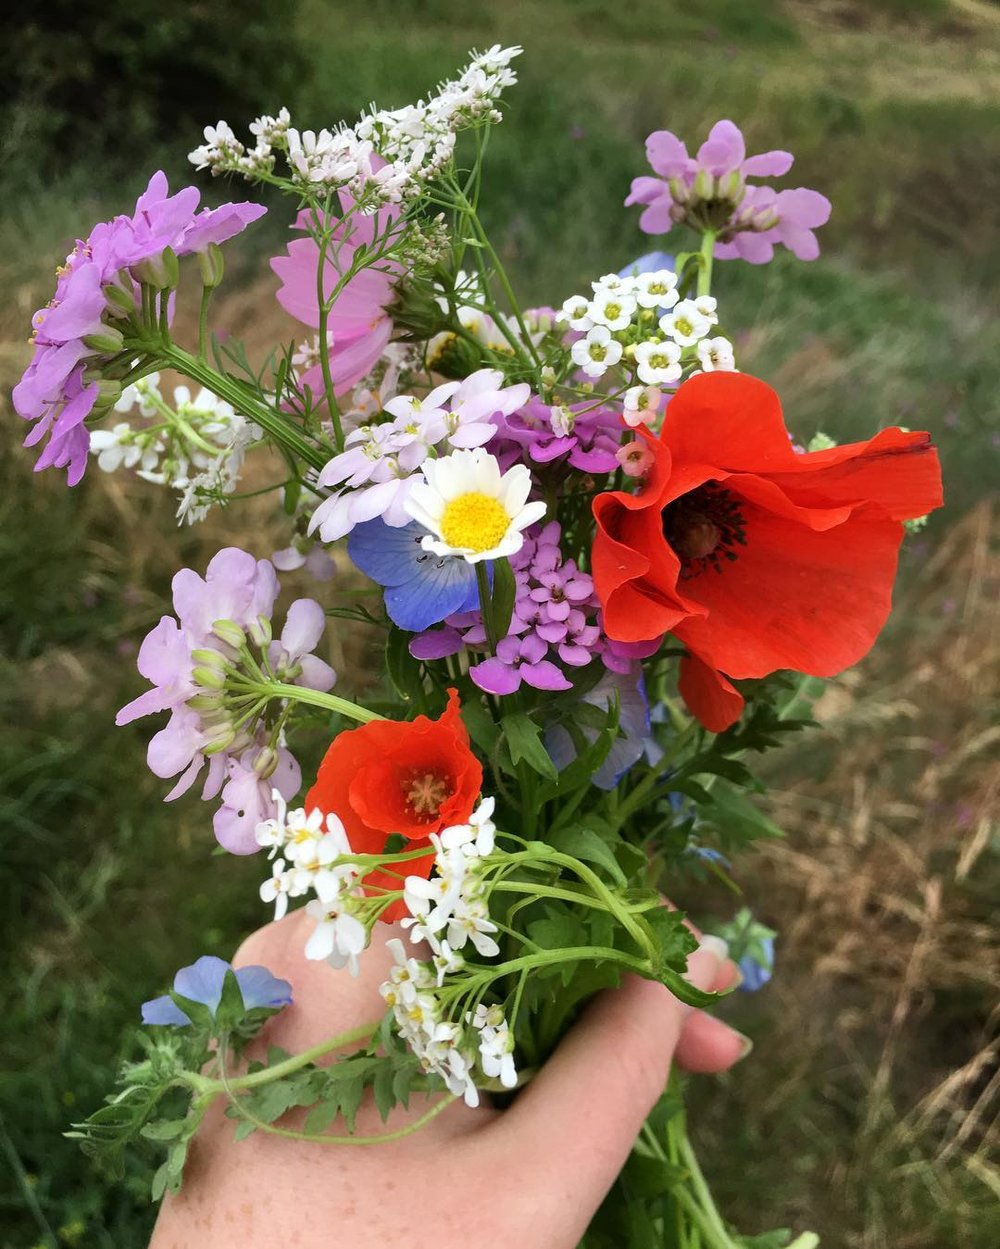 Another harvest highlight was this beautiful bouquet of wildflowers I grew from some seed blends from  West Coast Seeds .  They are so beautiful and great for attracting pollinators and other beneficial insects to the garden.  I will for sure be incorporating more flowers in my future gardens!